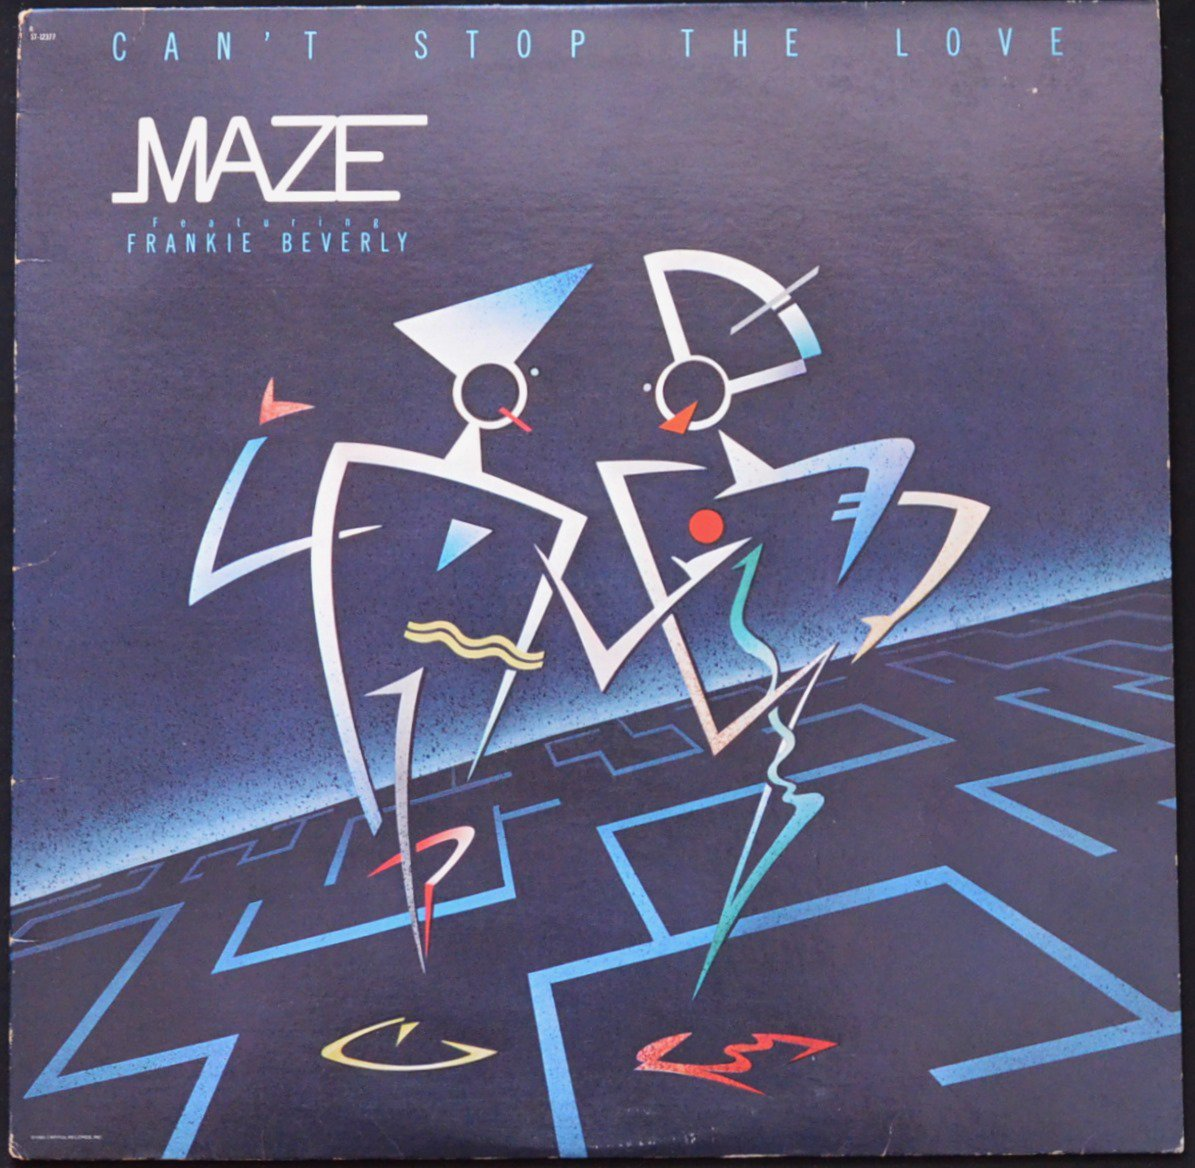 MAZE FEATURING FRANKIE BEVERLY ‎/ CAN'T STOP THE LOVE (LP)